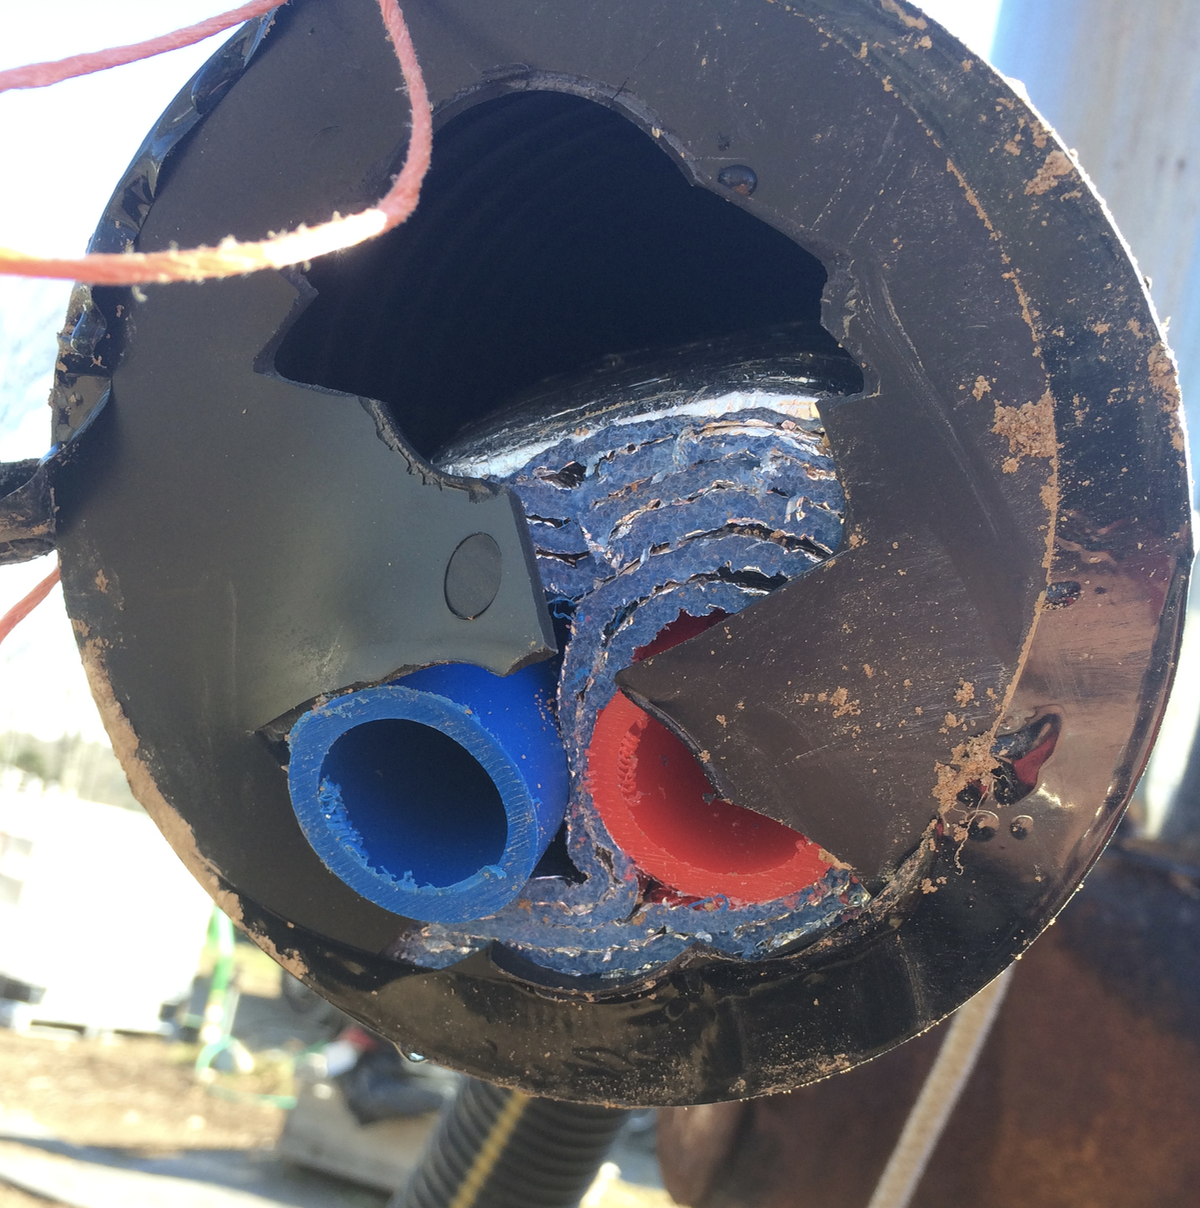 This is the weird insulated pipe